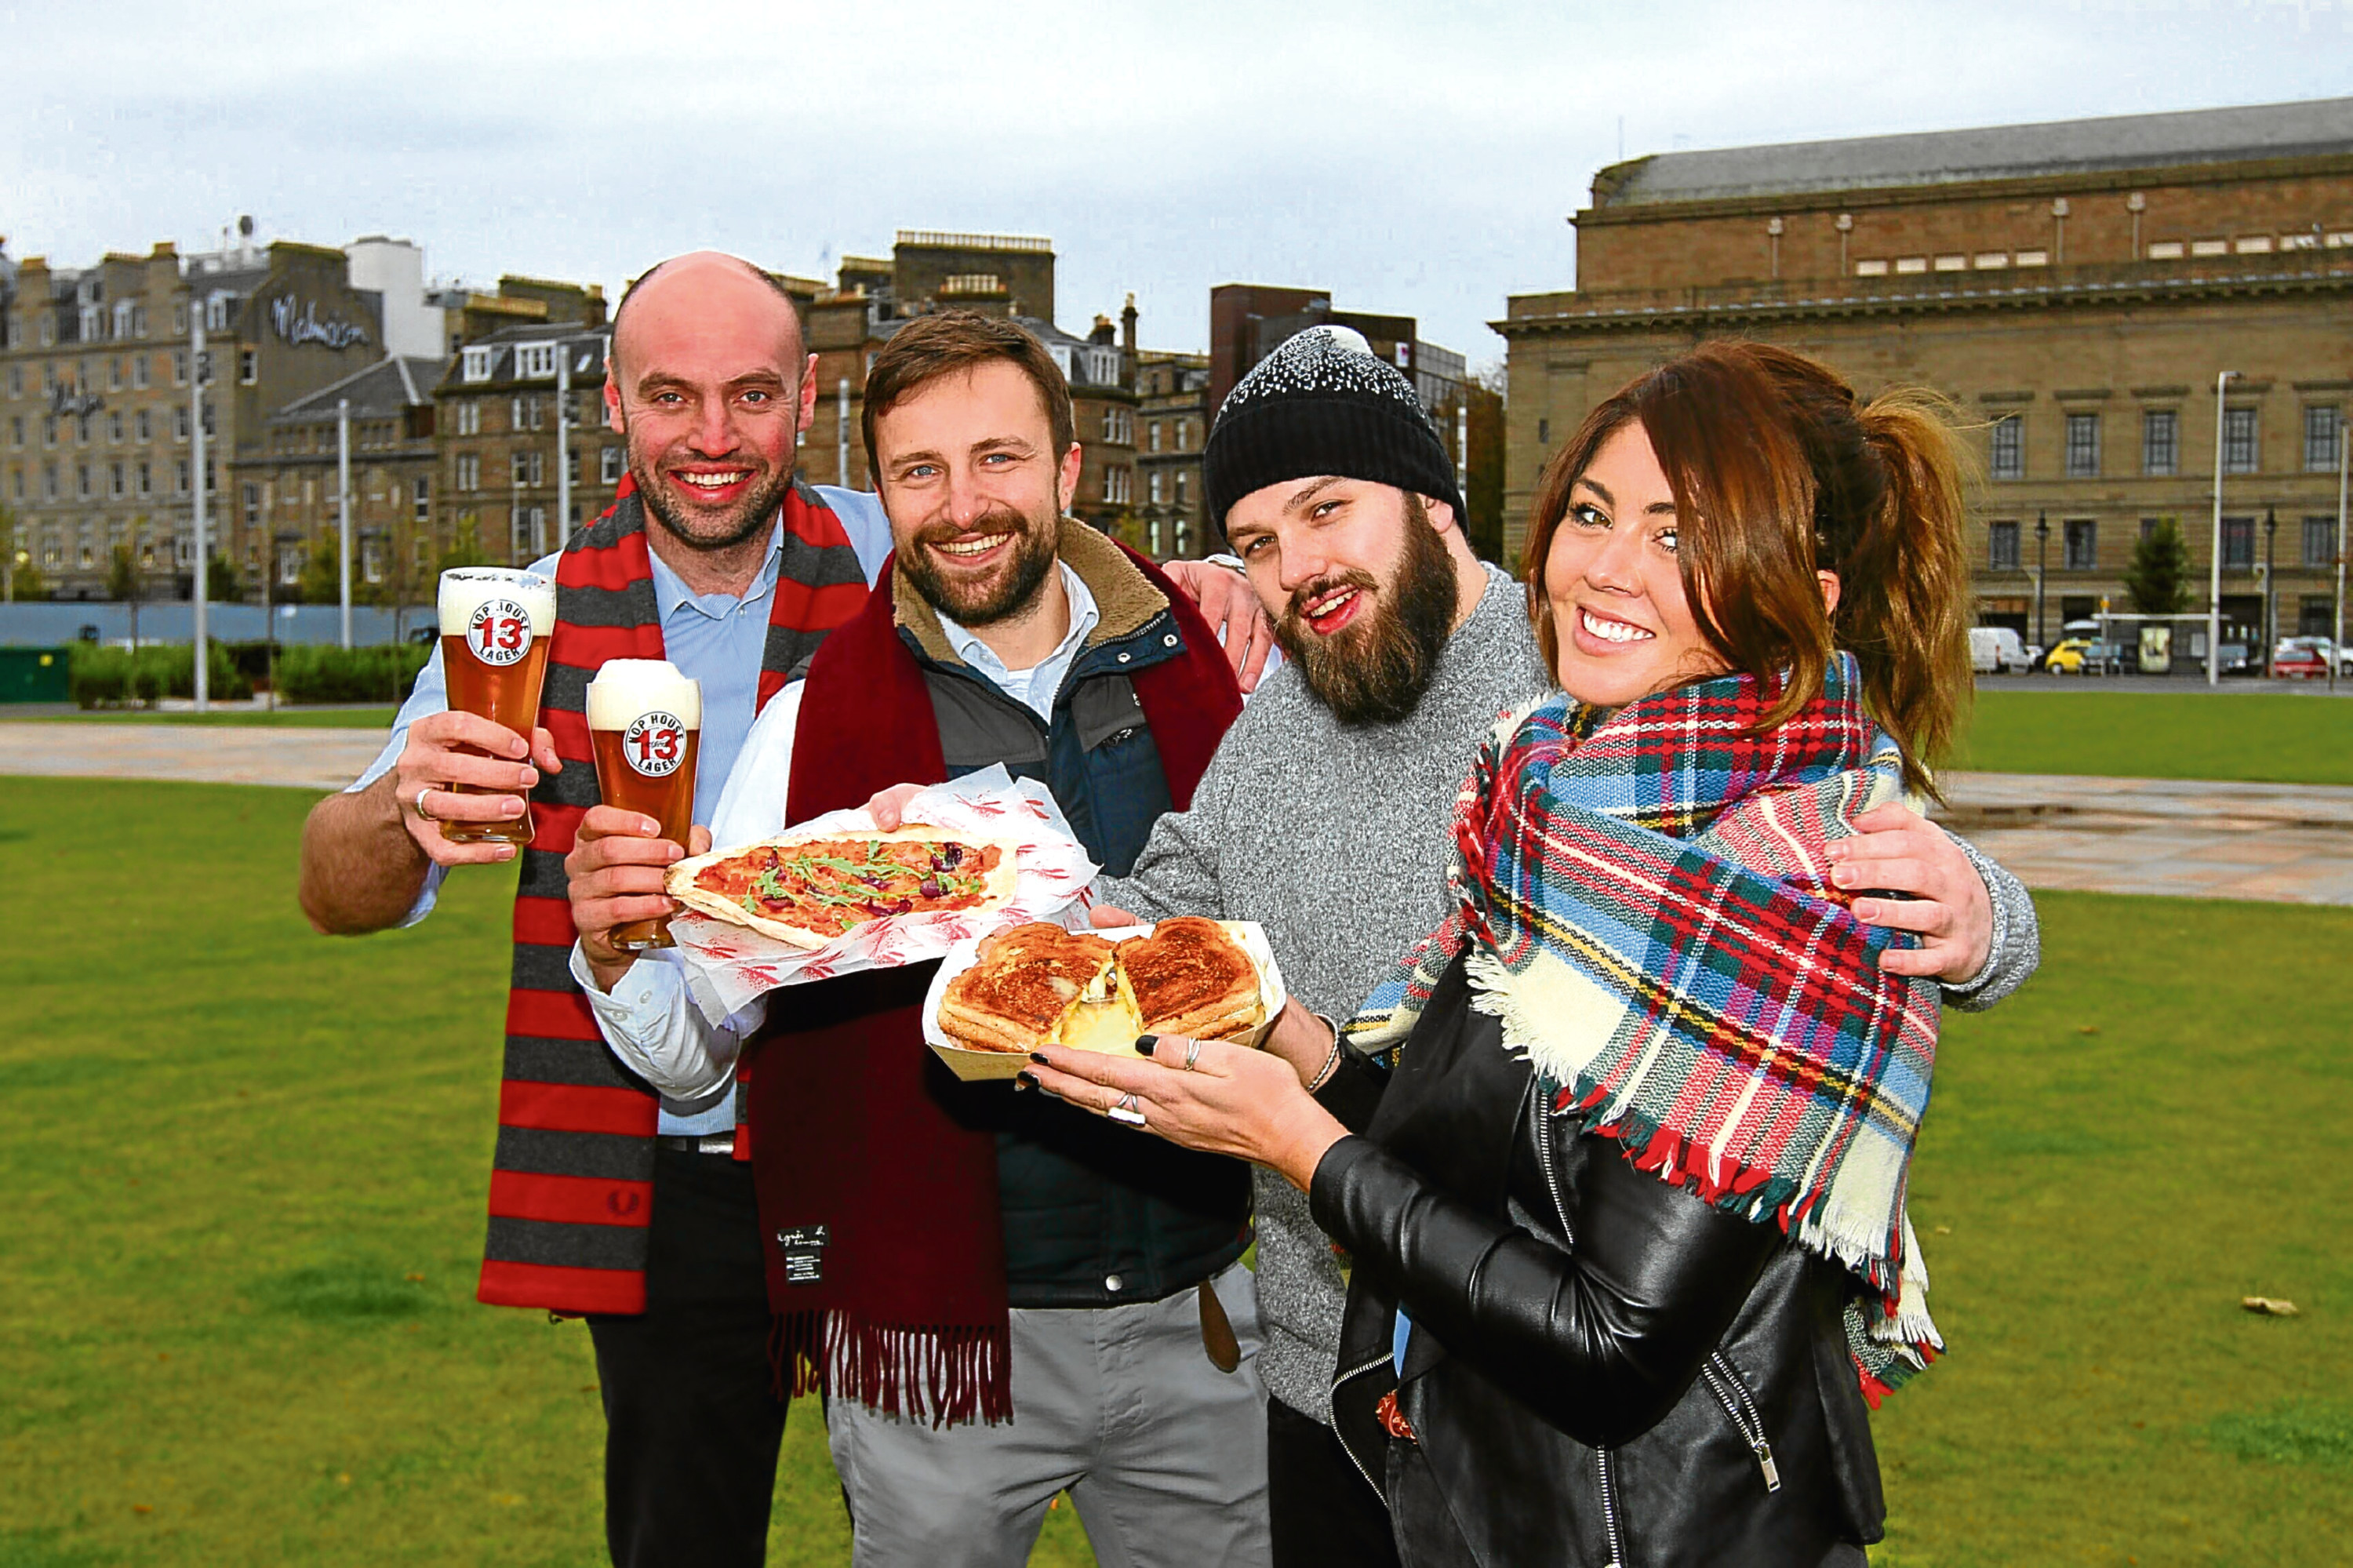 Promoting the market at Slessor Gardens are (from left) Bon Viveur's Andrew McMahon and Jake Zakrzewski, along with Martin Cleary, of The Vintage Food Truck and Kate Carter, of The Cheesy Toast Snack.